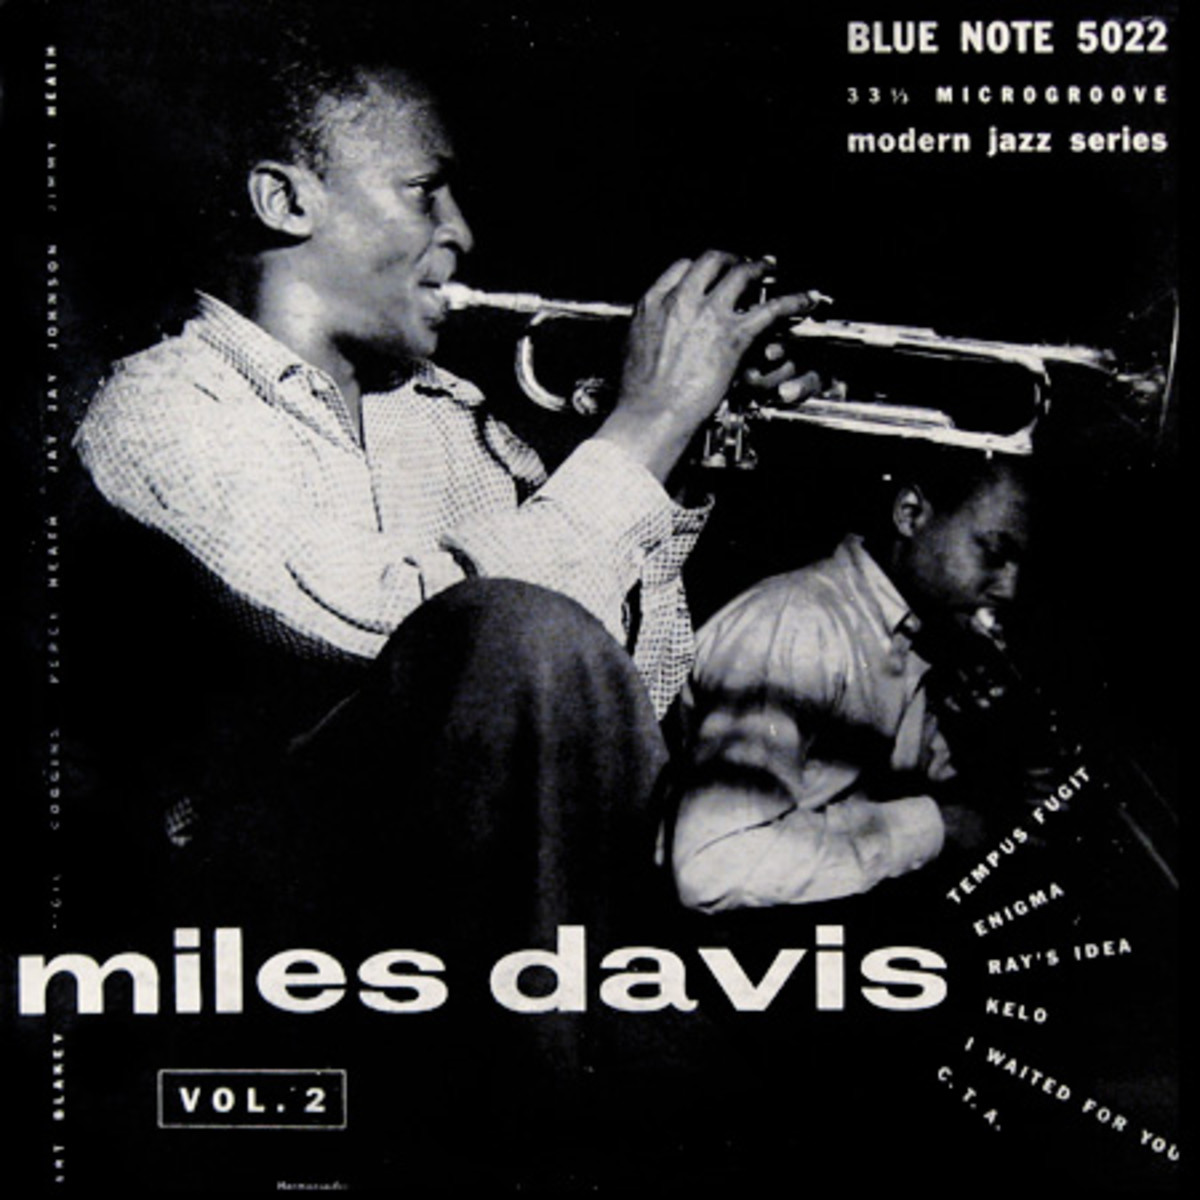 "Miles Davis, vol. 2 Blue Note Records BLP 5022 10"" LP Vinyl Microgroove LP Record (1953) Album Cover Design by John Hermansader, Photo by Francis Wolff"